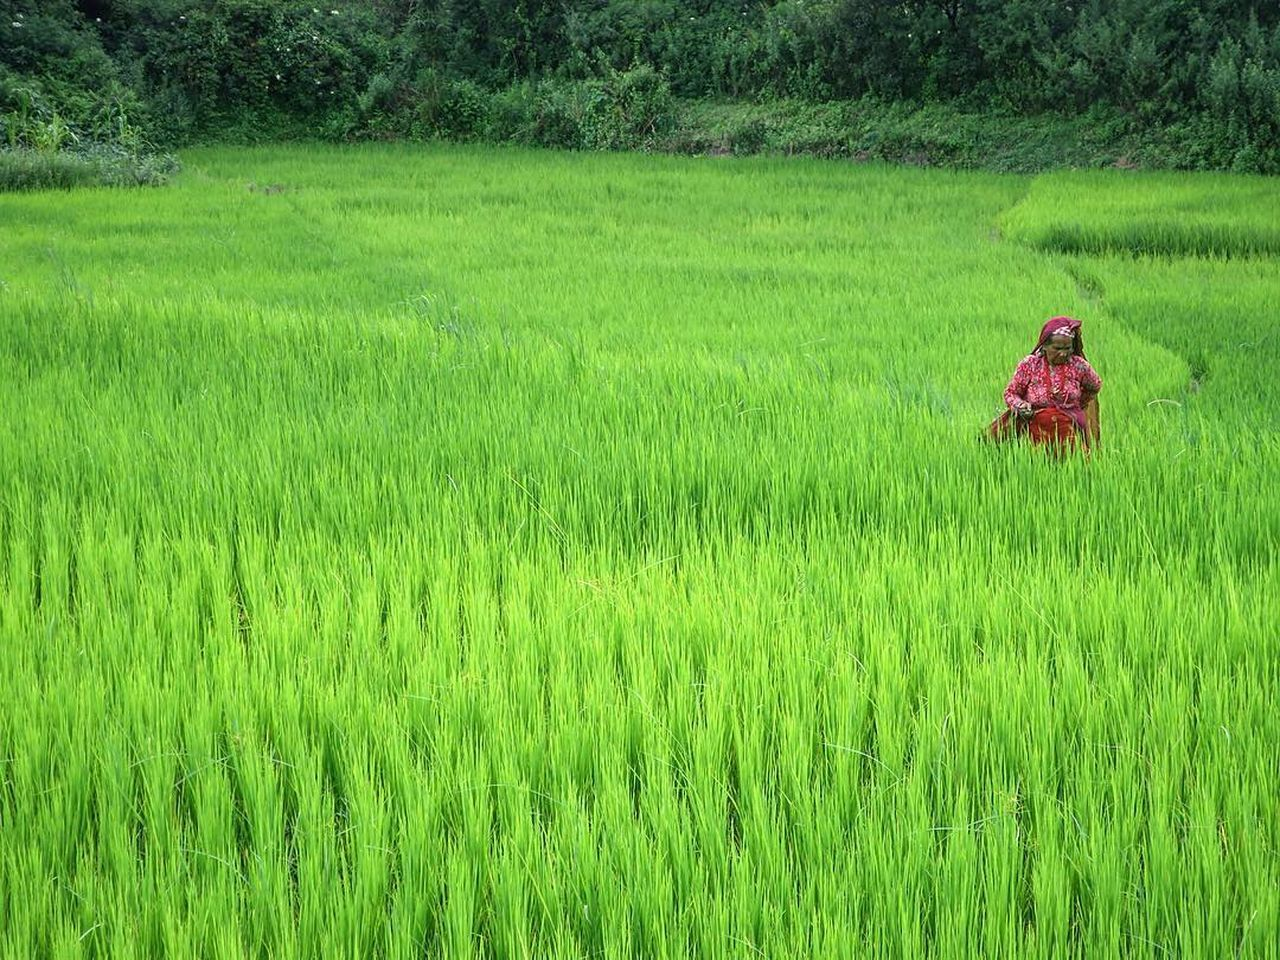 Green Color Field Grass Farm Growth Real People Nature Agriculture Outdoors One Person Day Nepal Nepali  Nepalipeople😊 Nepal Travel Nepali Way Bhaktapur Nepalese Nepali People Nepali Culture Travel Travel Destinations